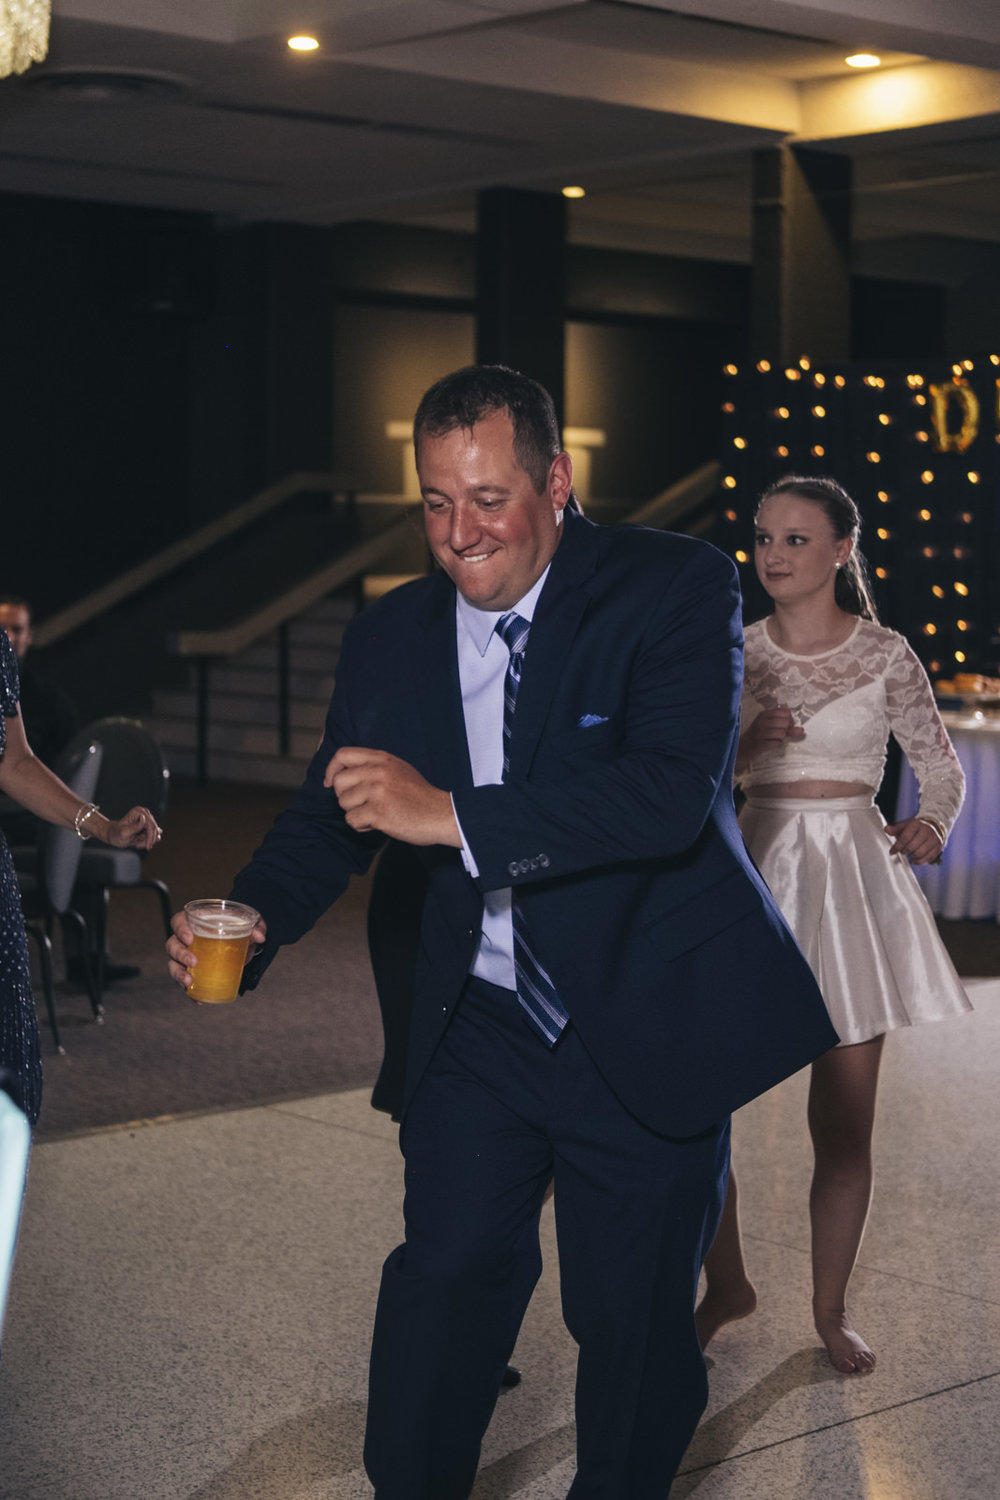 Groom dances at his wedding reception in Northwest Ohio.